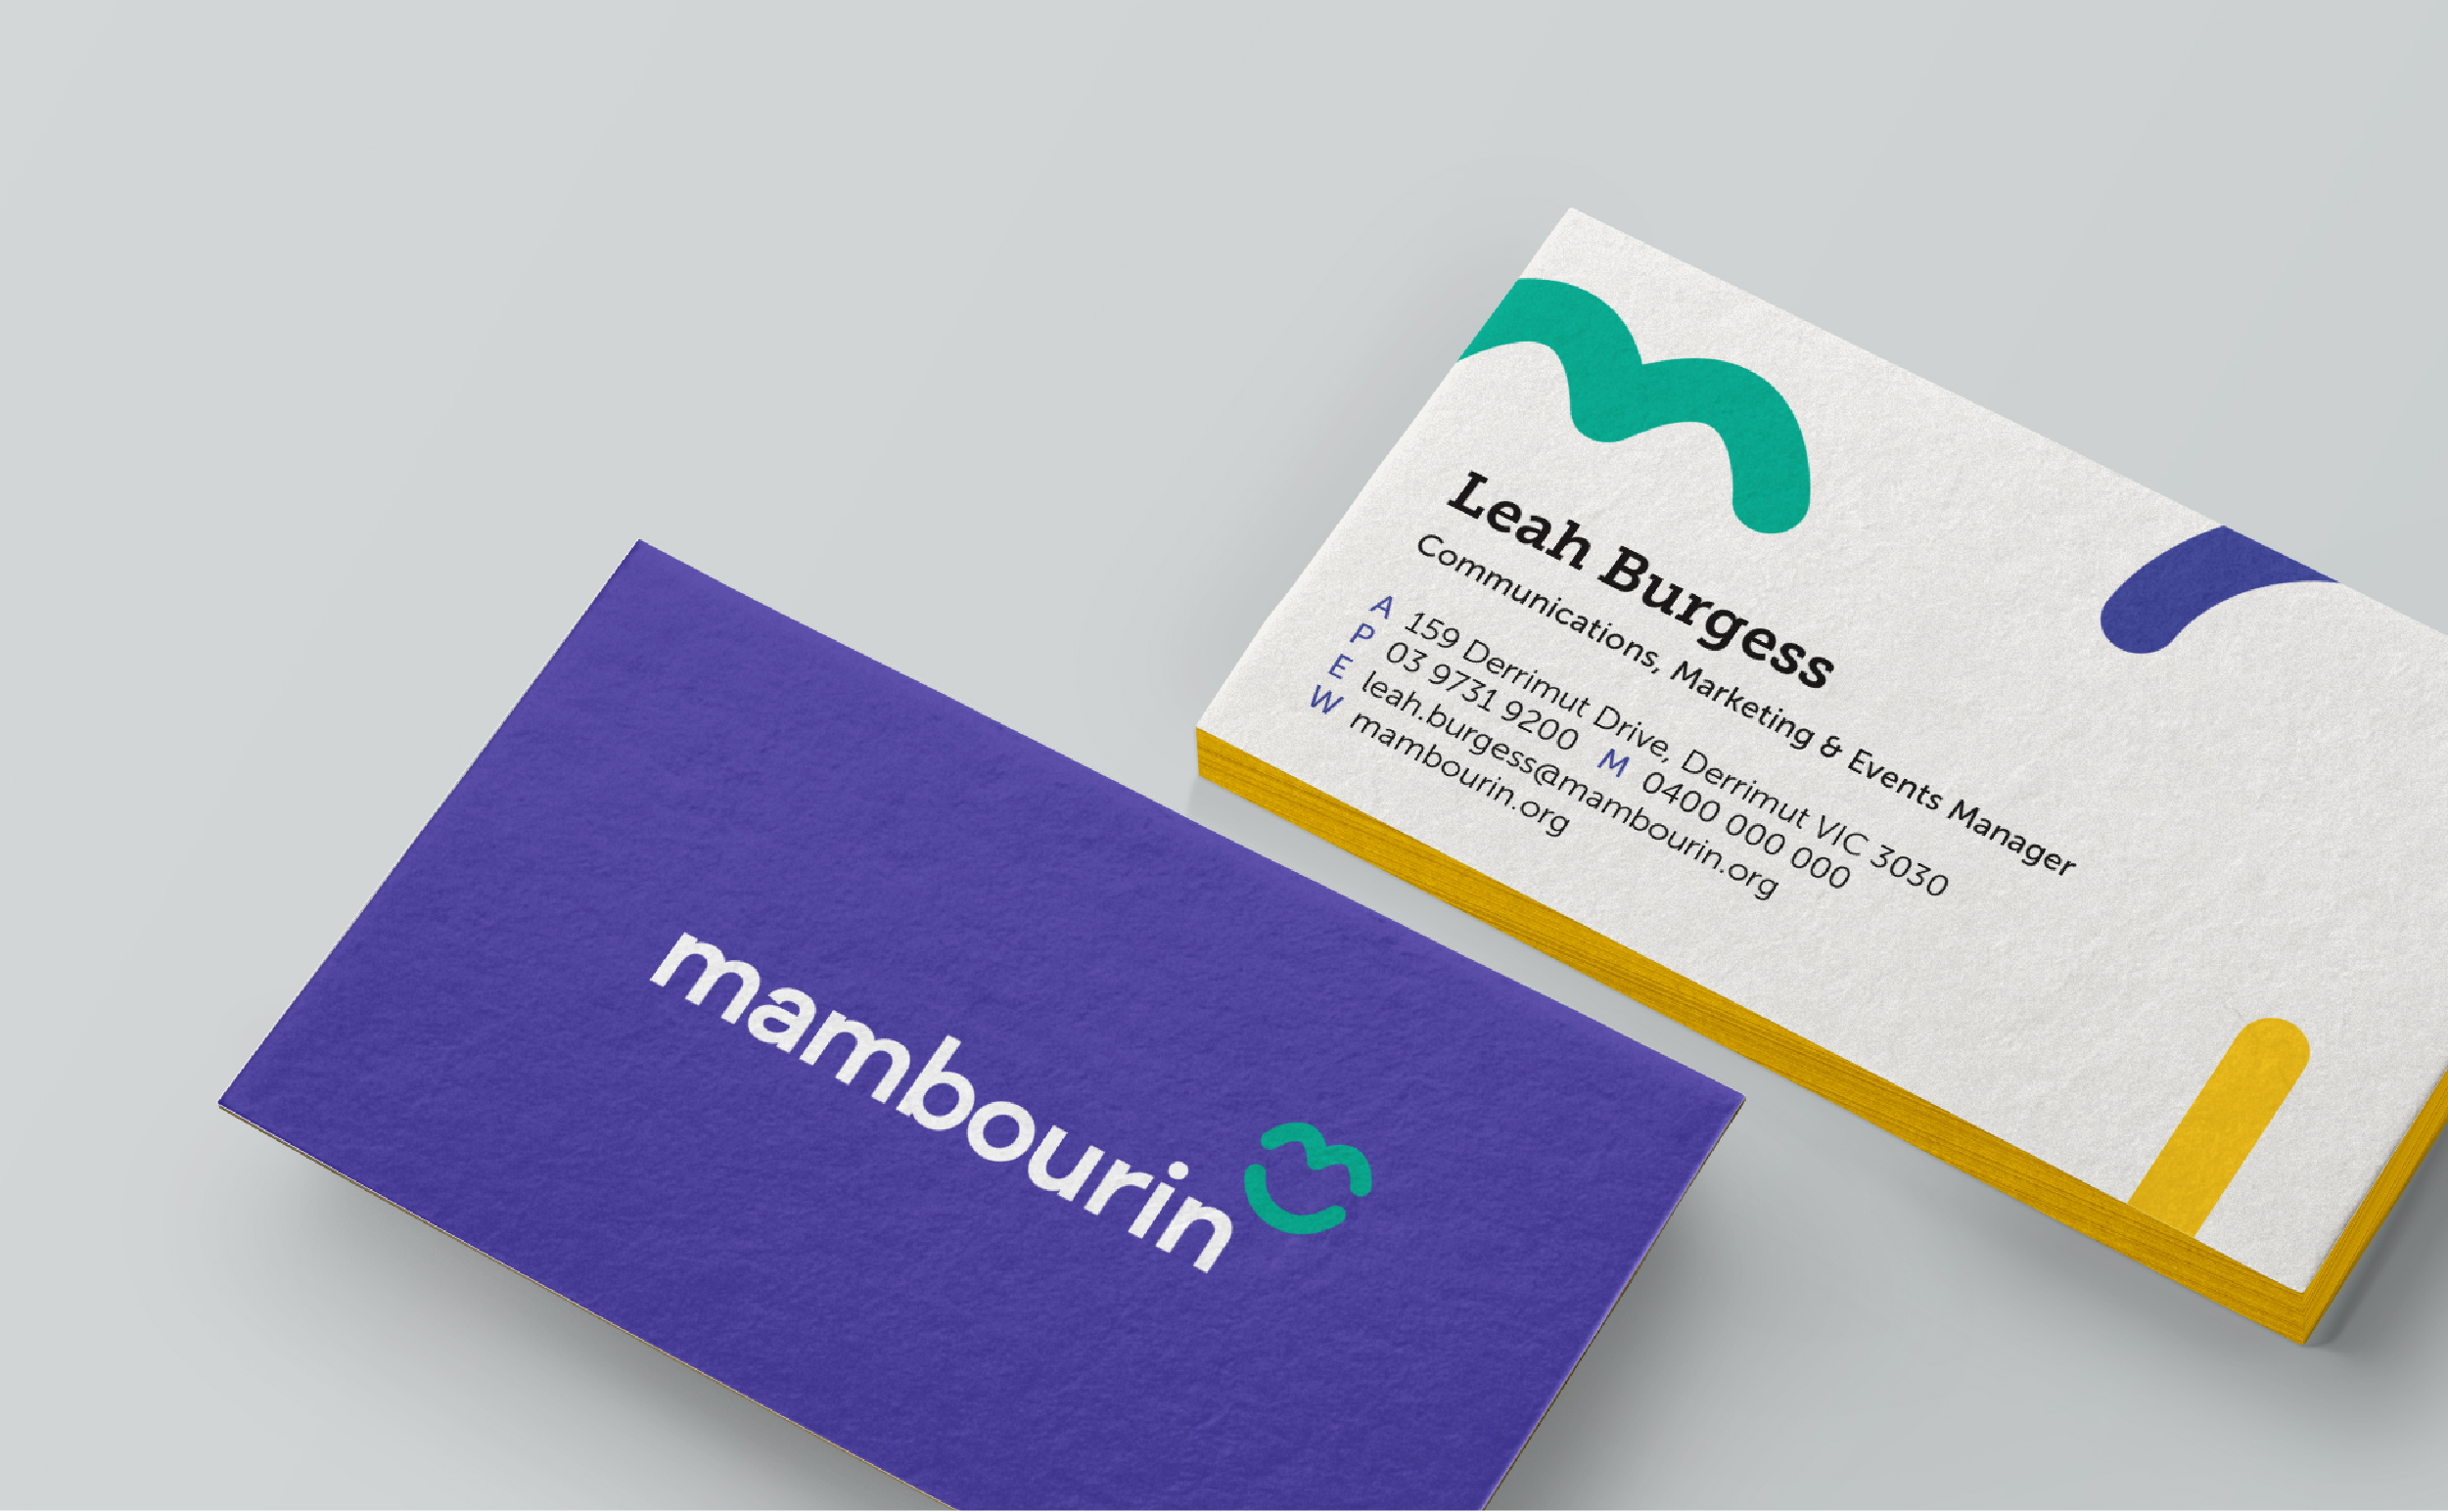 Mambourin - Re-brand new business card design